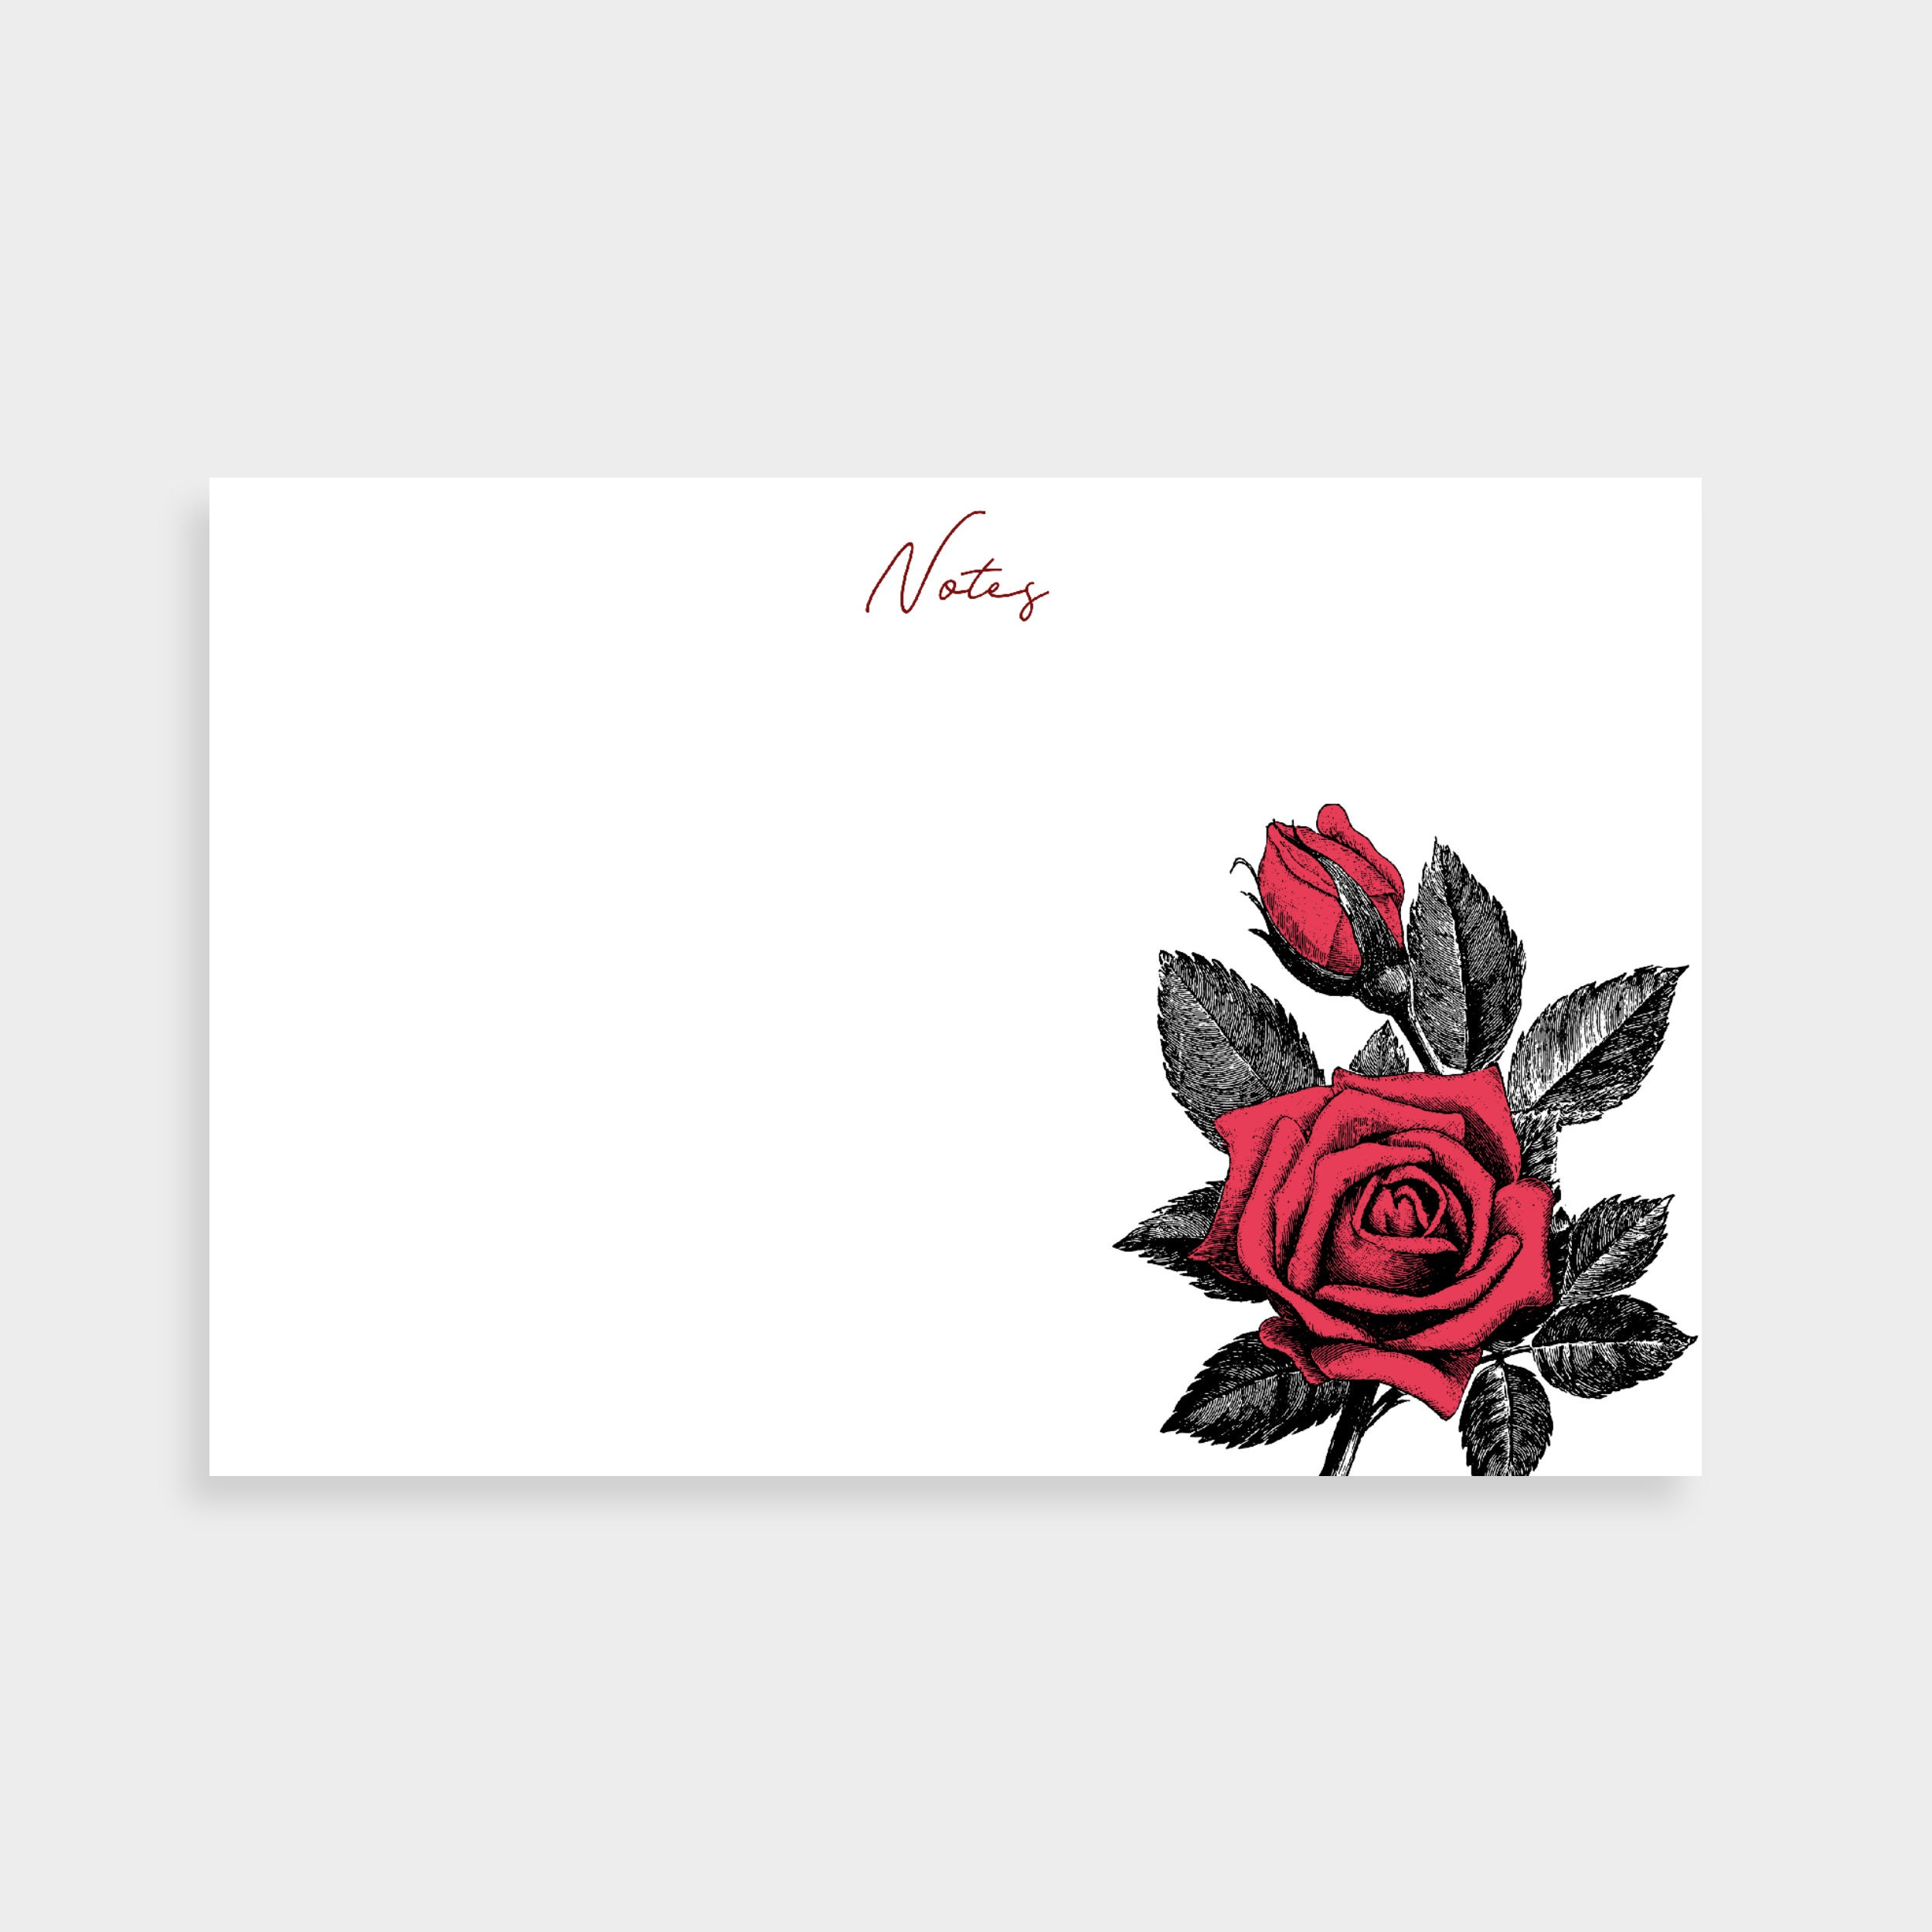 "White notecard with an illustration of a red rose in the bottom right. Notecard says ""Notes"" in the top centre."